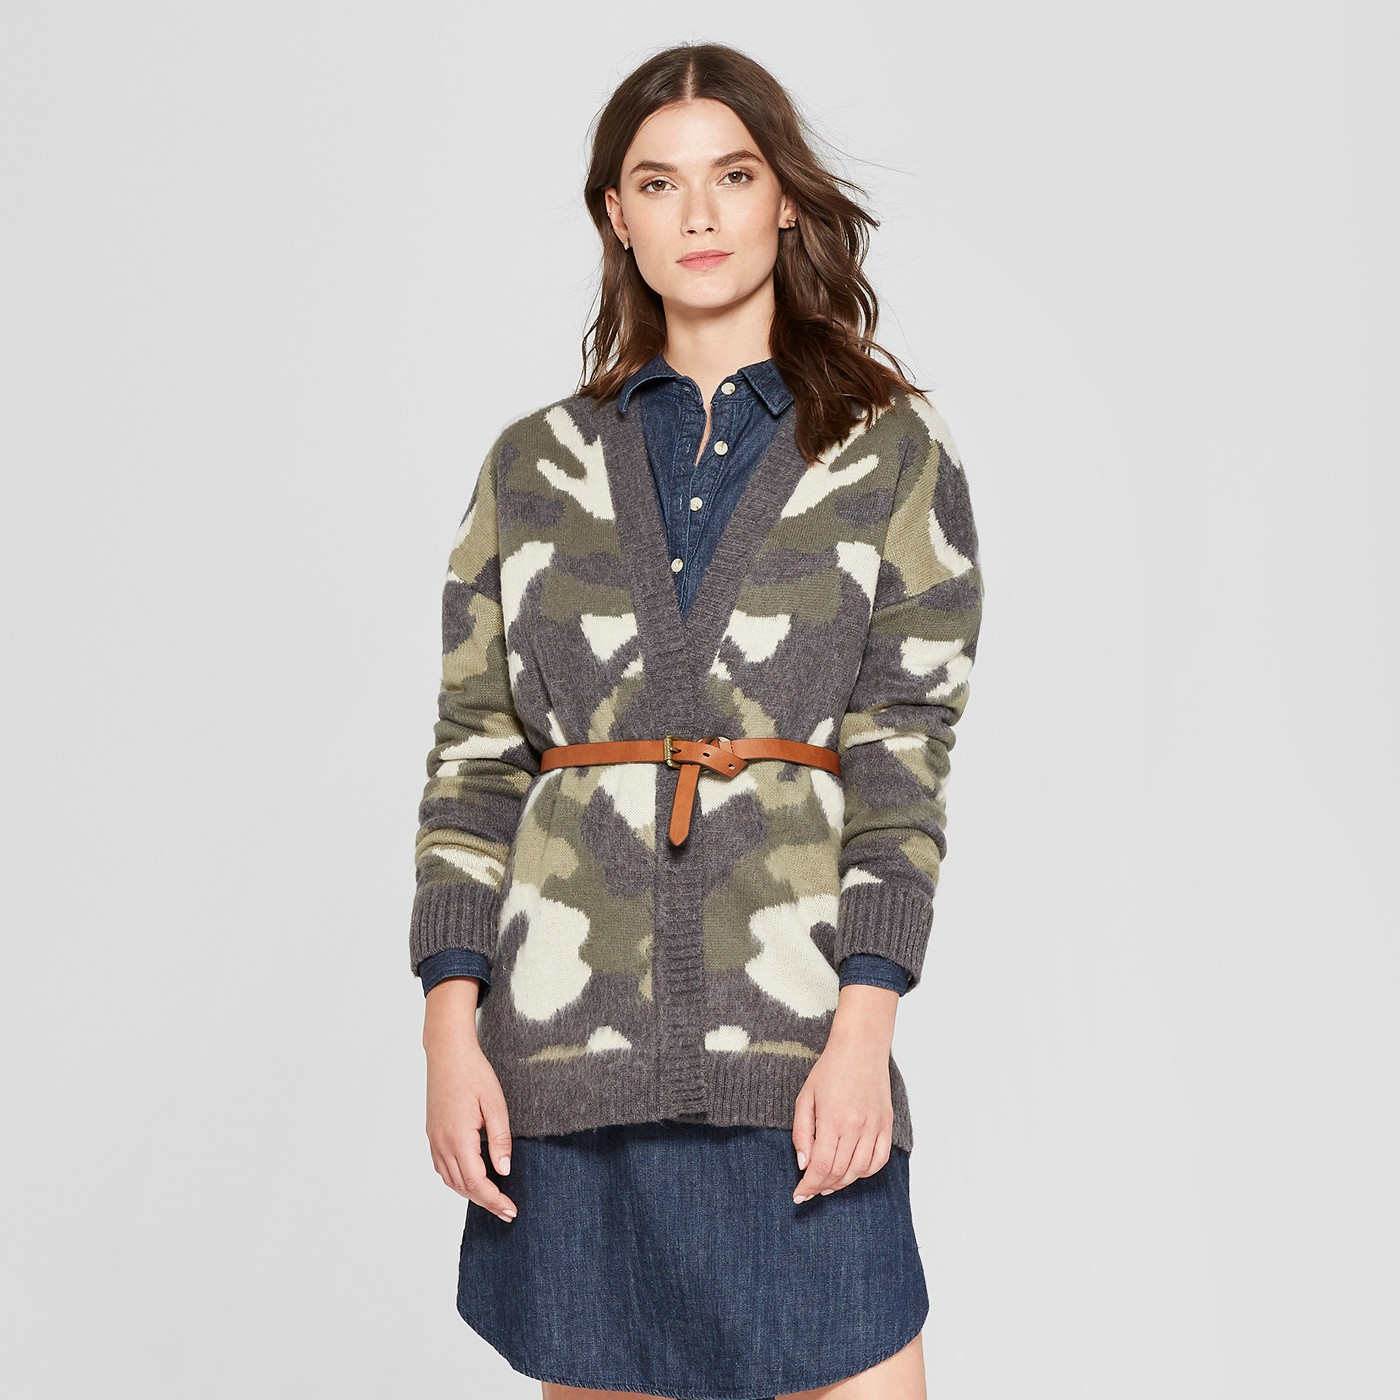 "Women's Camo Open Cardigan - Universal Threadâ""¢ Camo - image 1 of 3"